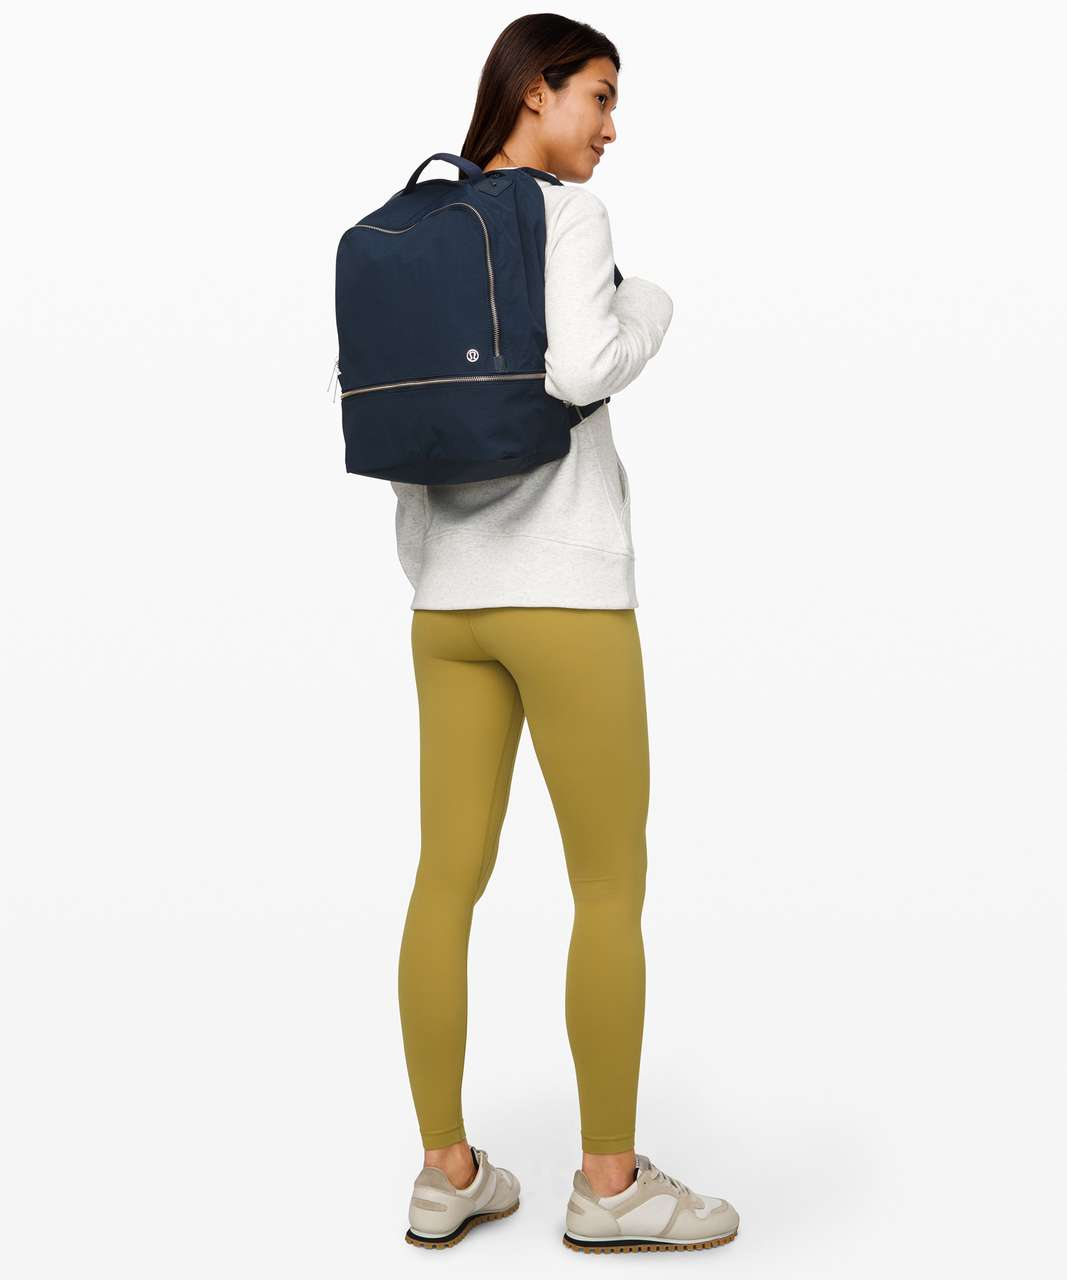 Lululemon City Adventurer Backpack *17L - True Navy